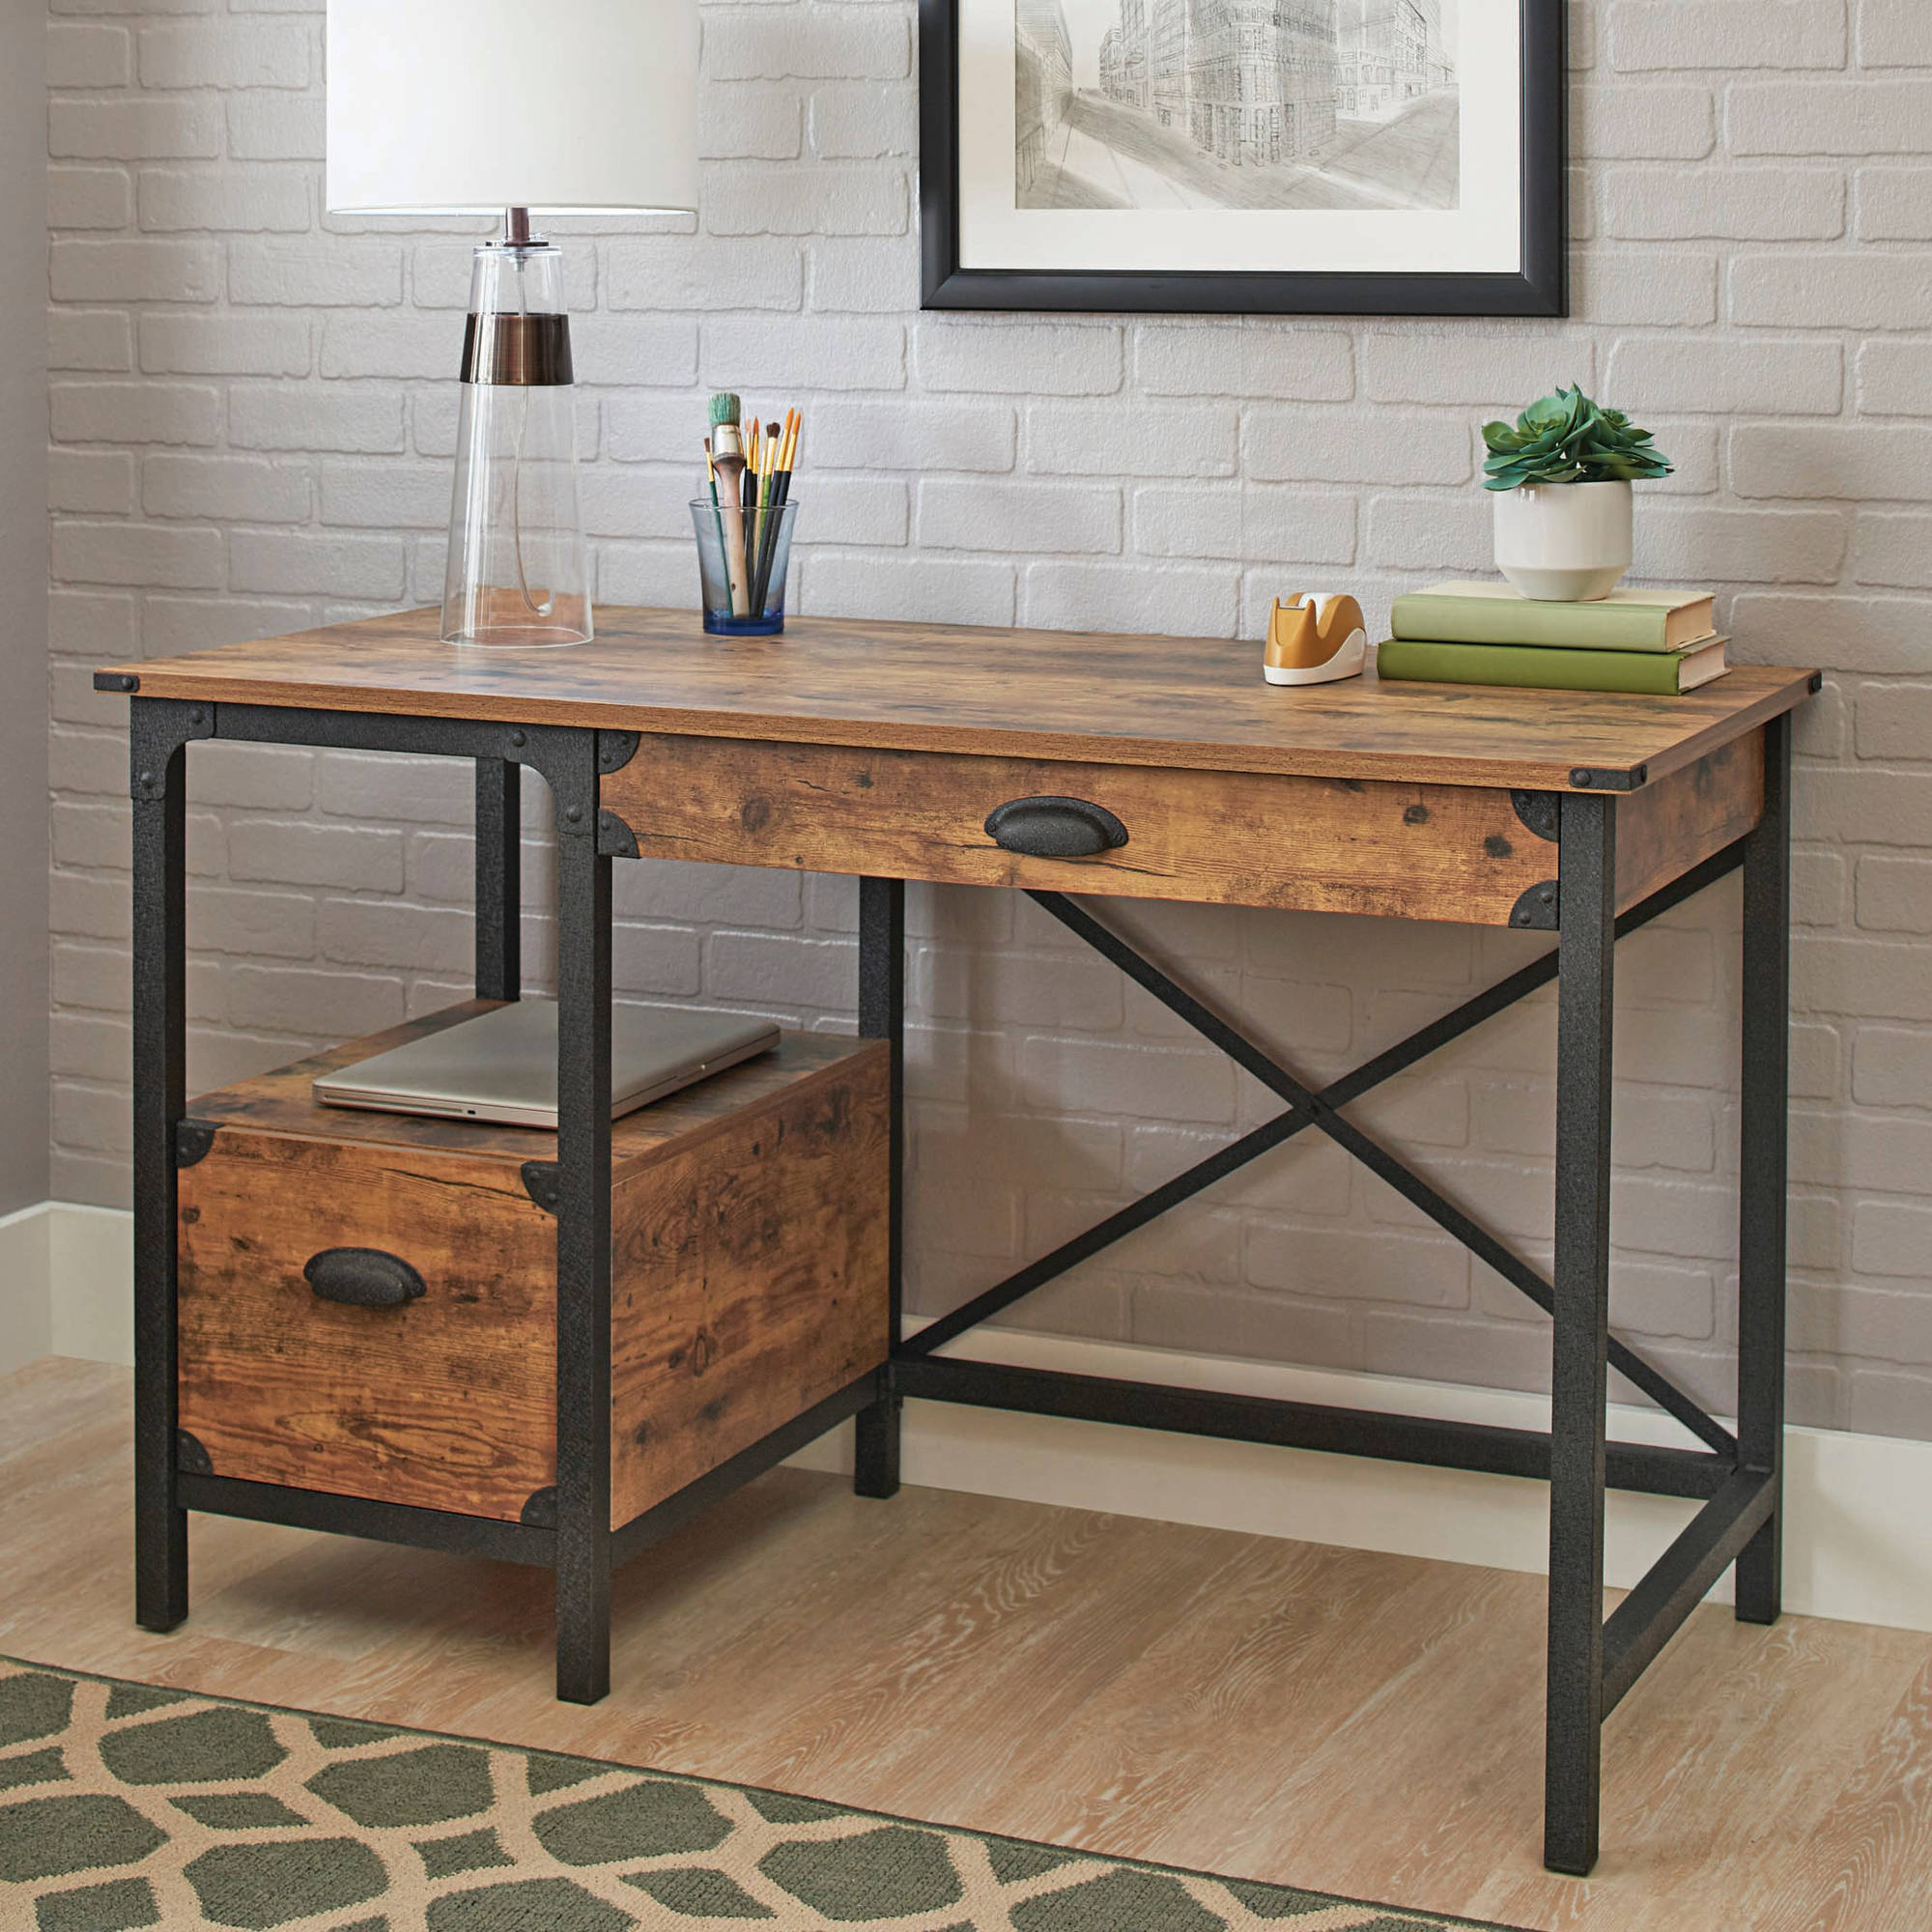 Trendy Country Dining Tables With Weathered Pine Finish Regarding Better Homes & Gardens Rustic Country Desk, Weathered Pine (View 18 of 25)